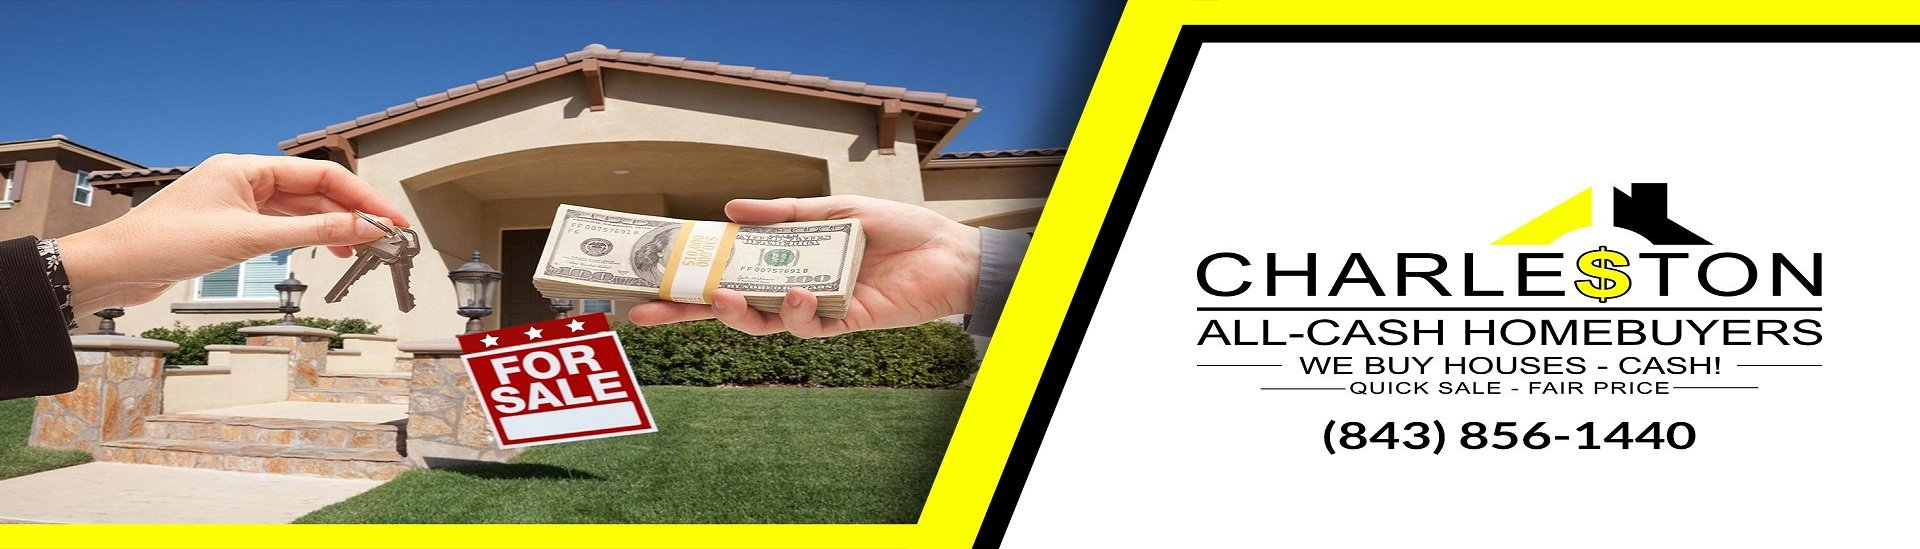 Charleston All-Cash Home Buyers  logo